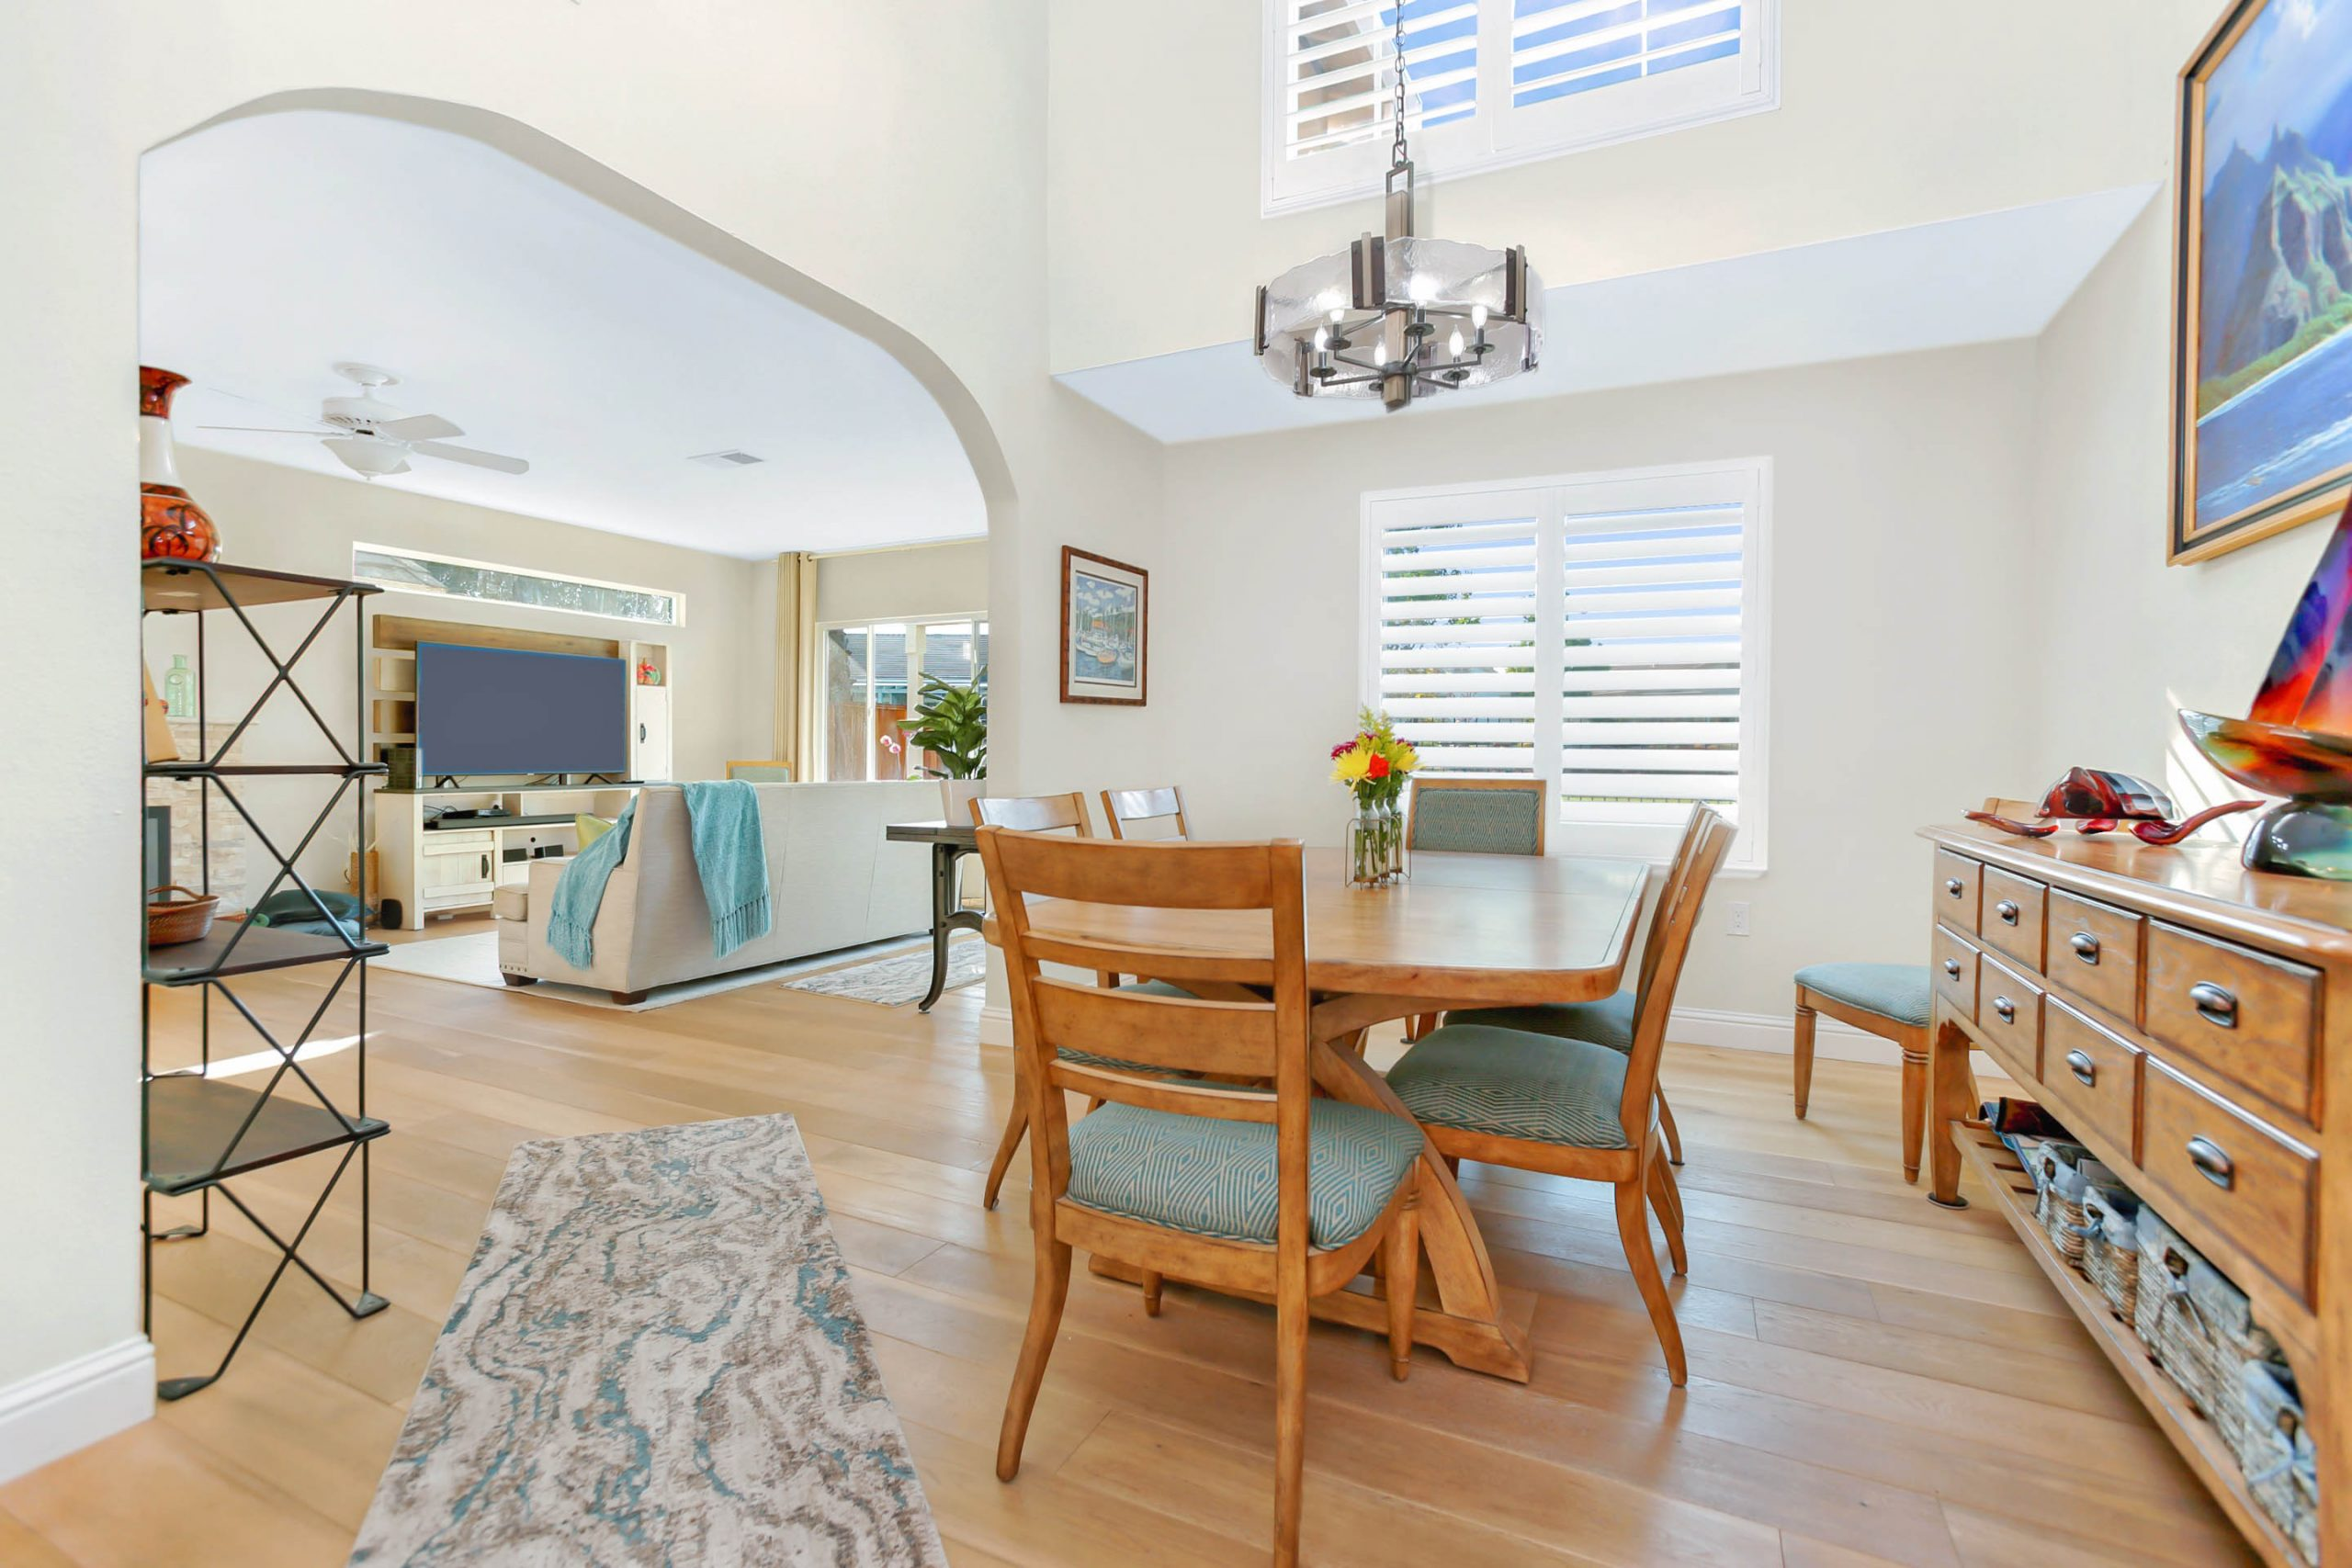 The expanded family room and dining room have dramatically changed entertaining in this home.